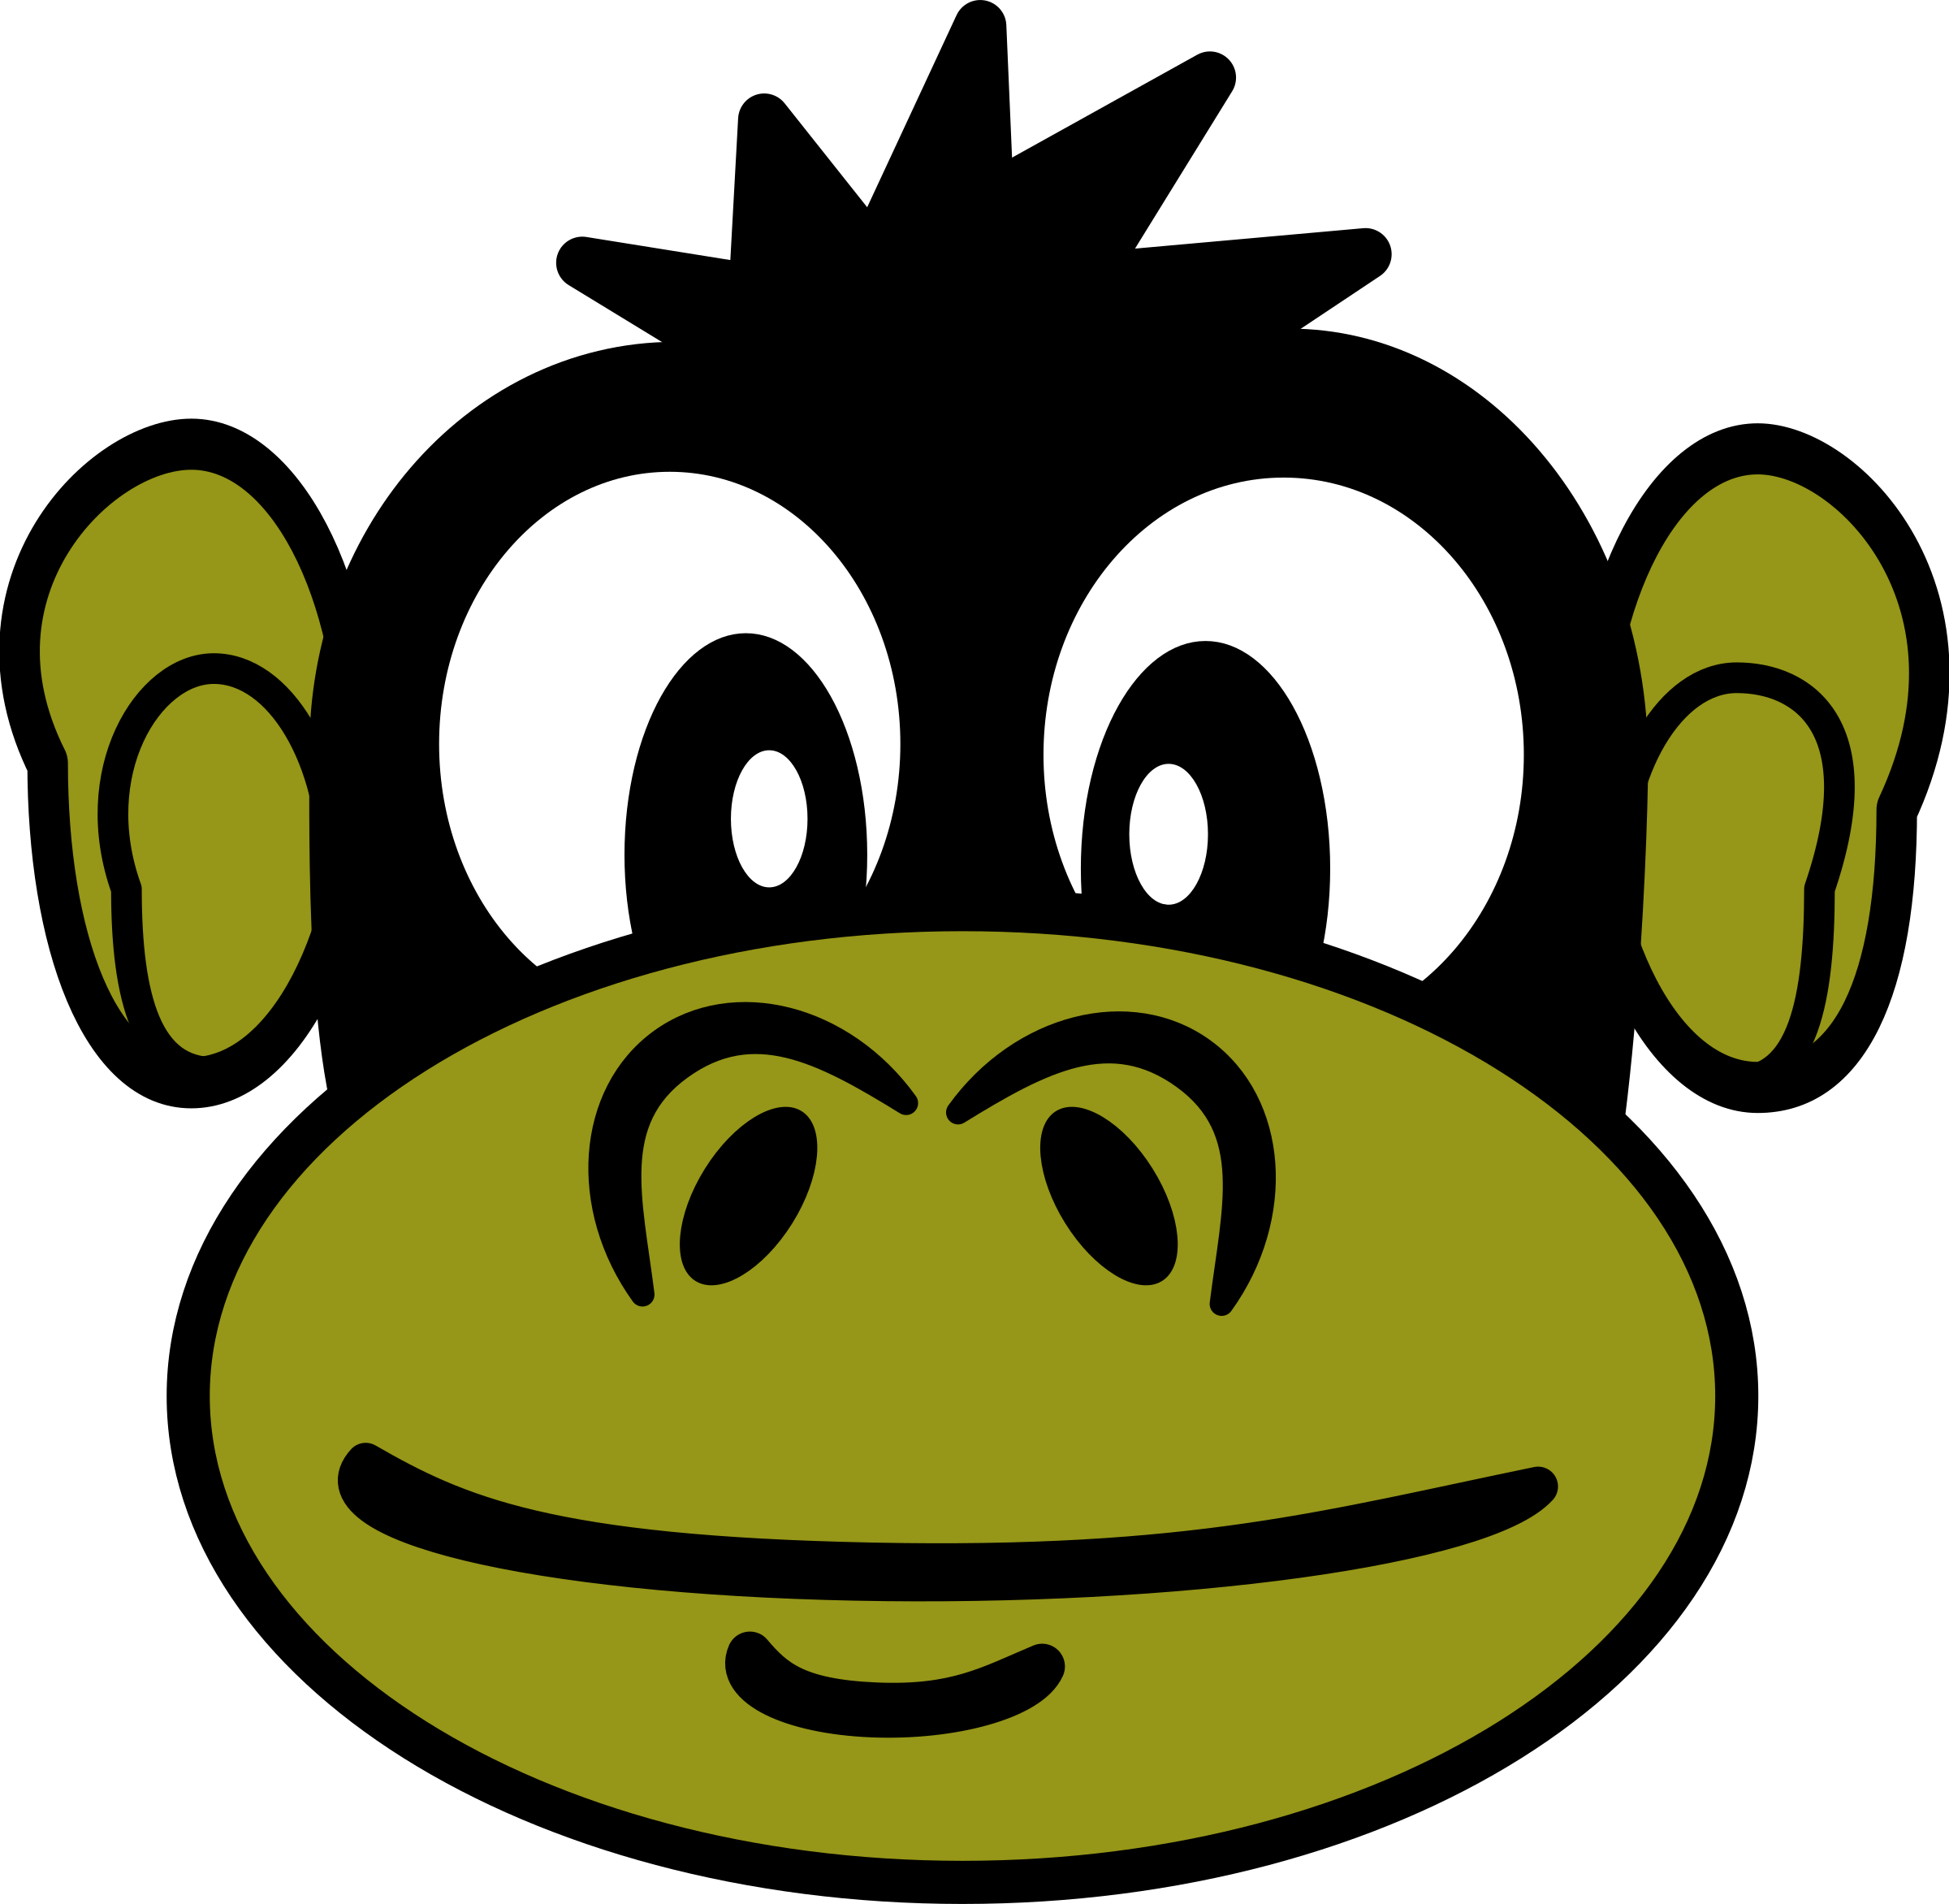 Monkey by PeterM